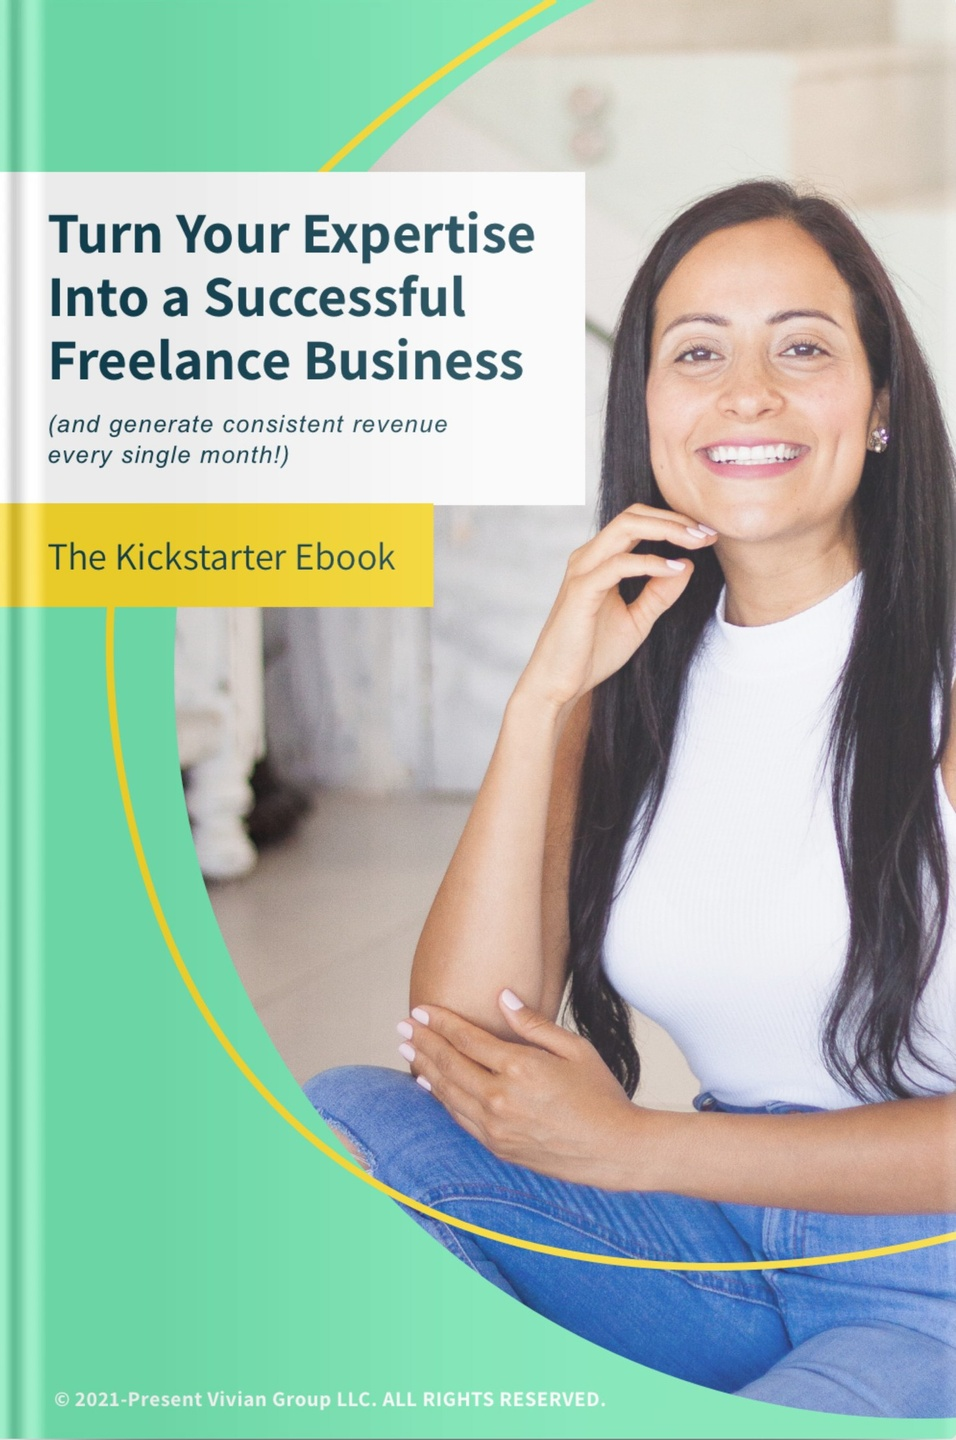 Vivian Belle - Turning your side hustle into a successful freelance business